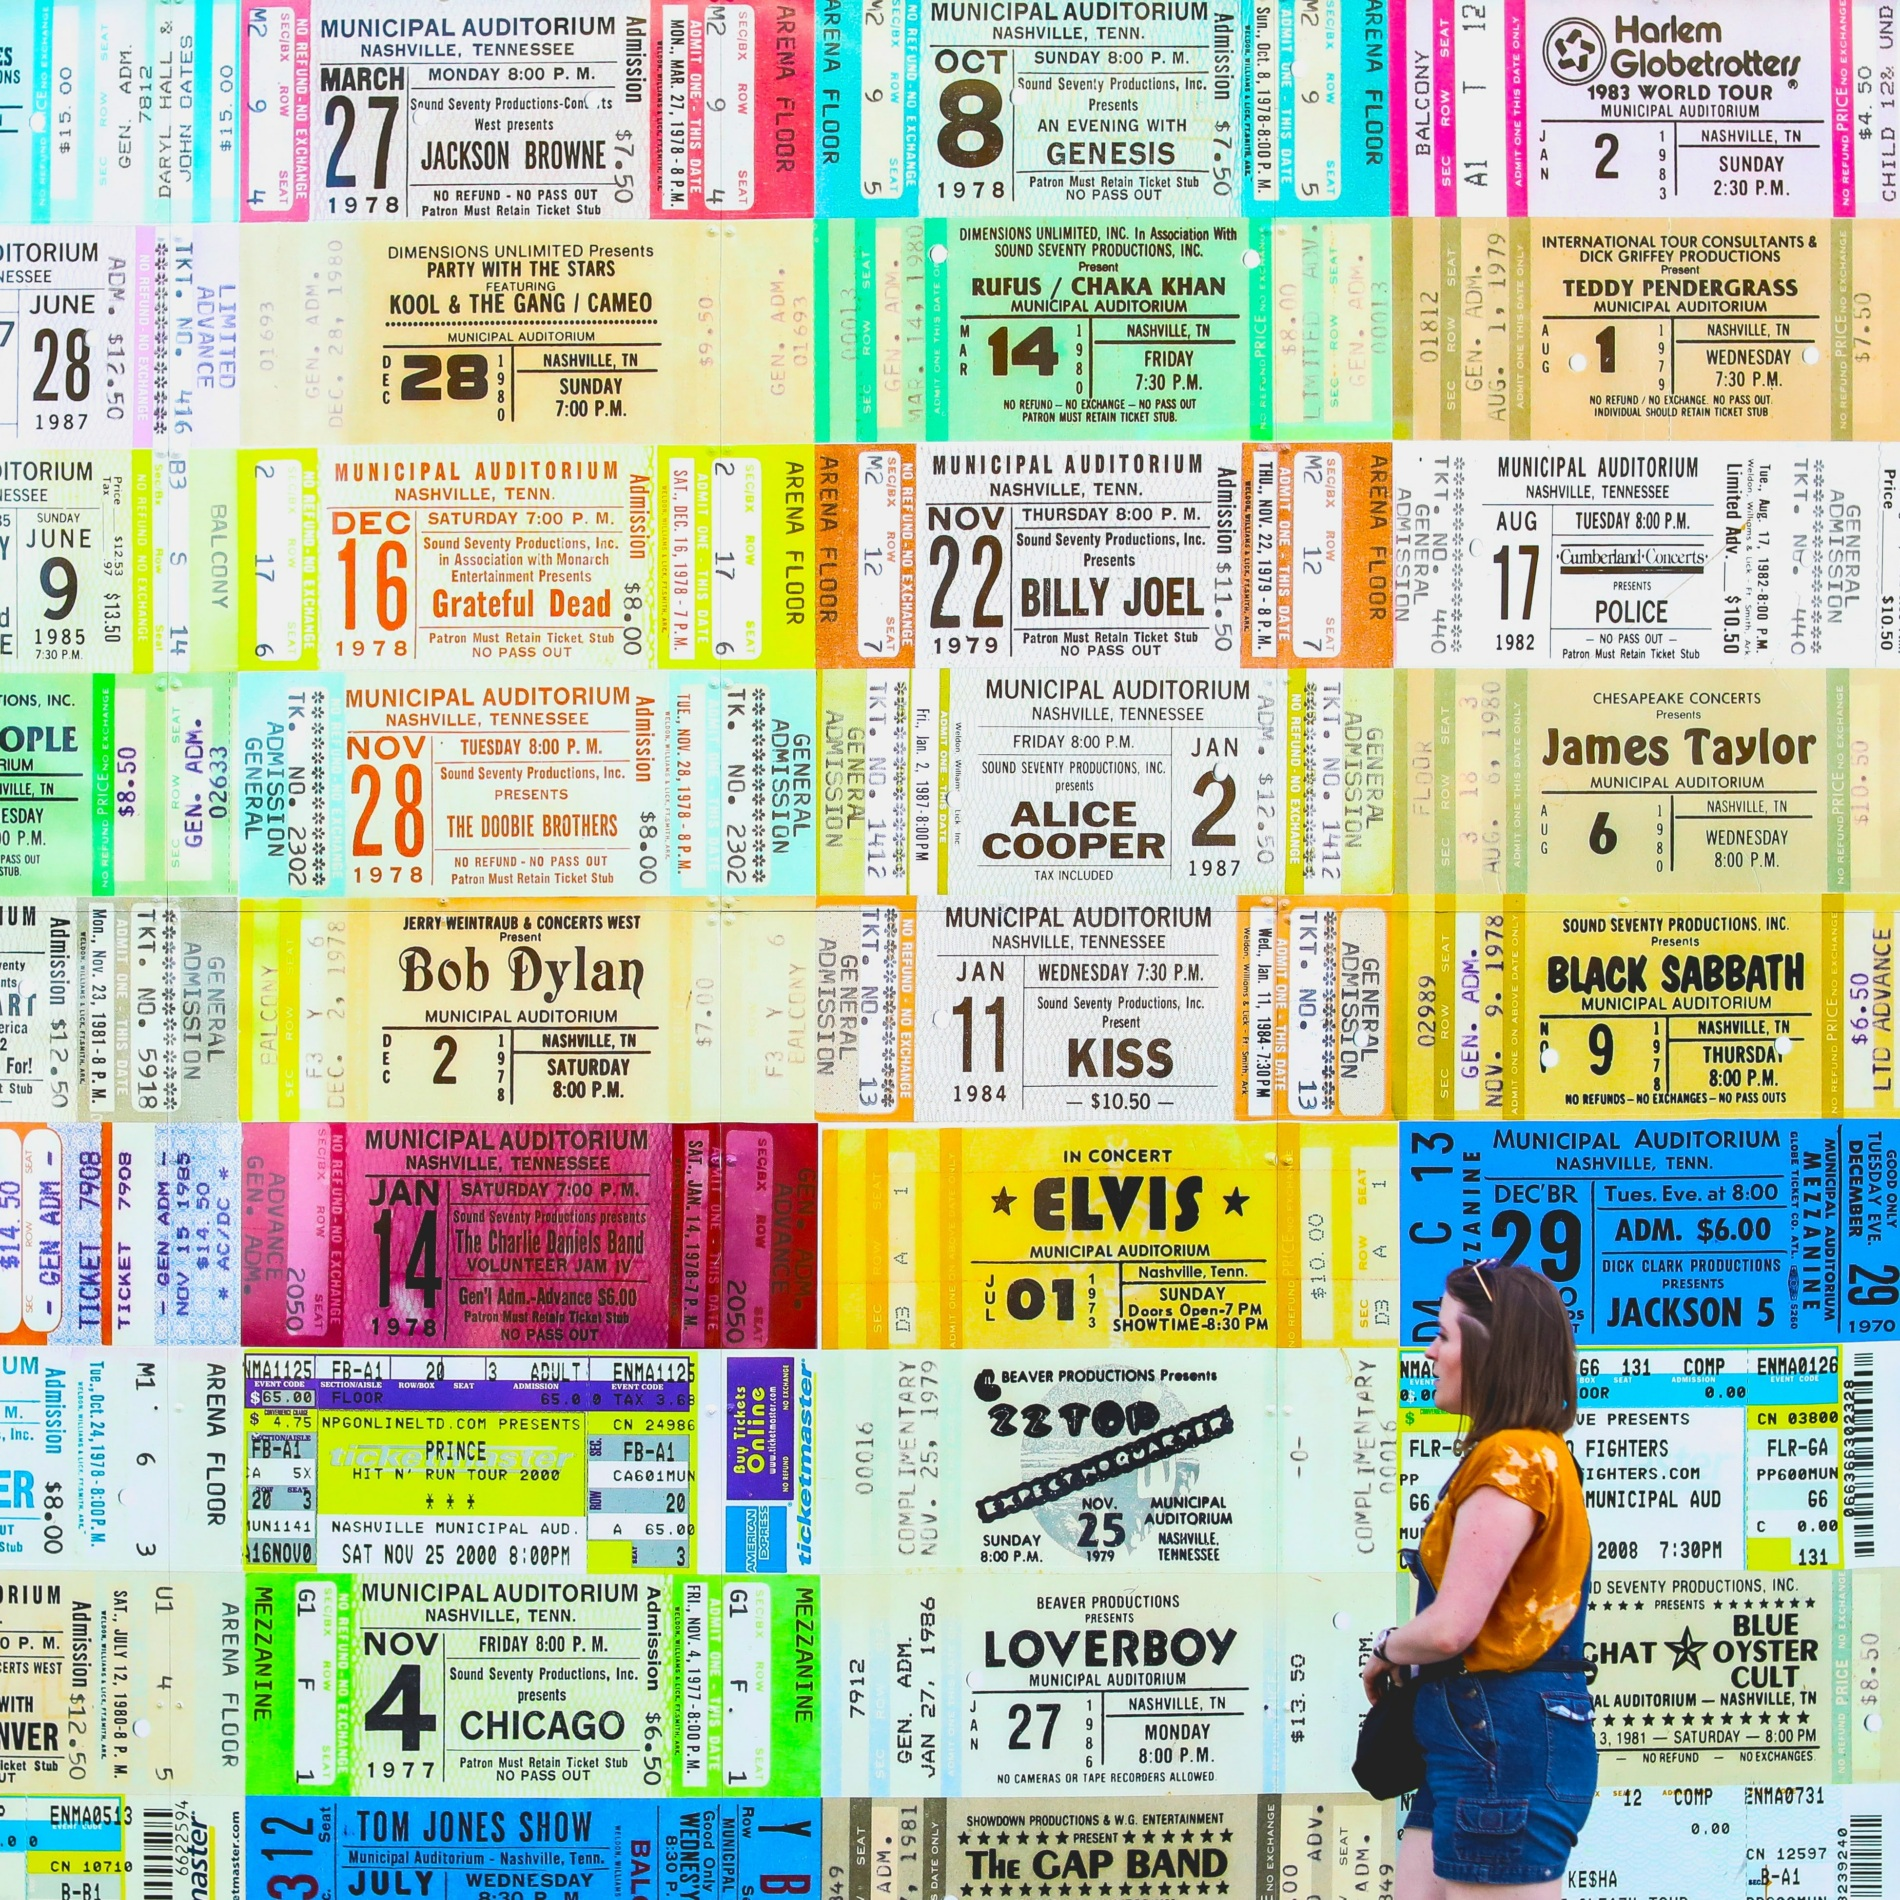 Mi distribuidor me ha hecho ticket-jacking